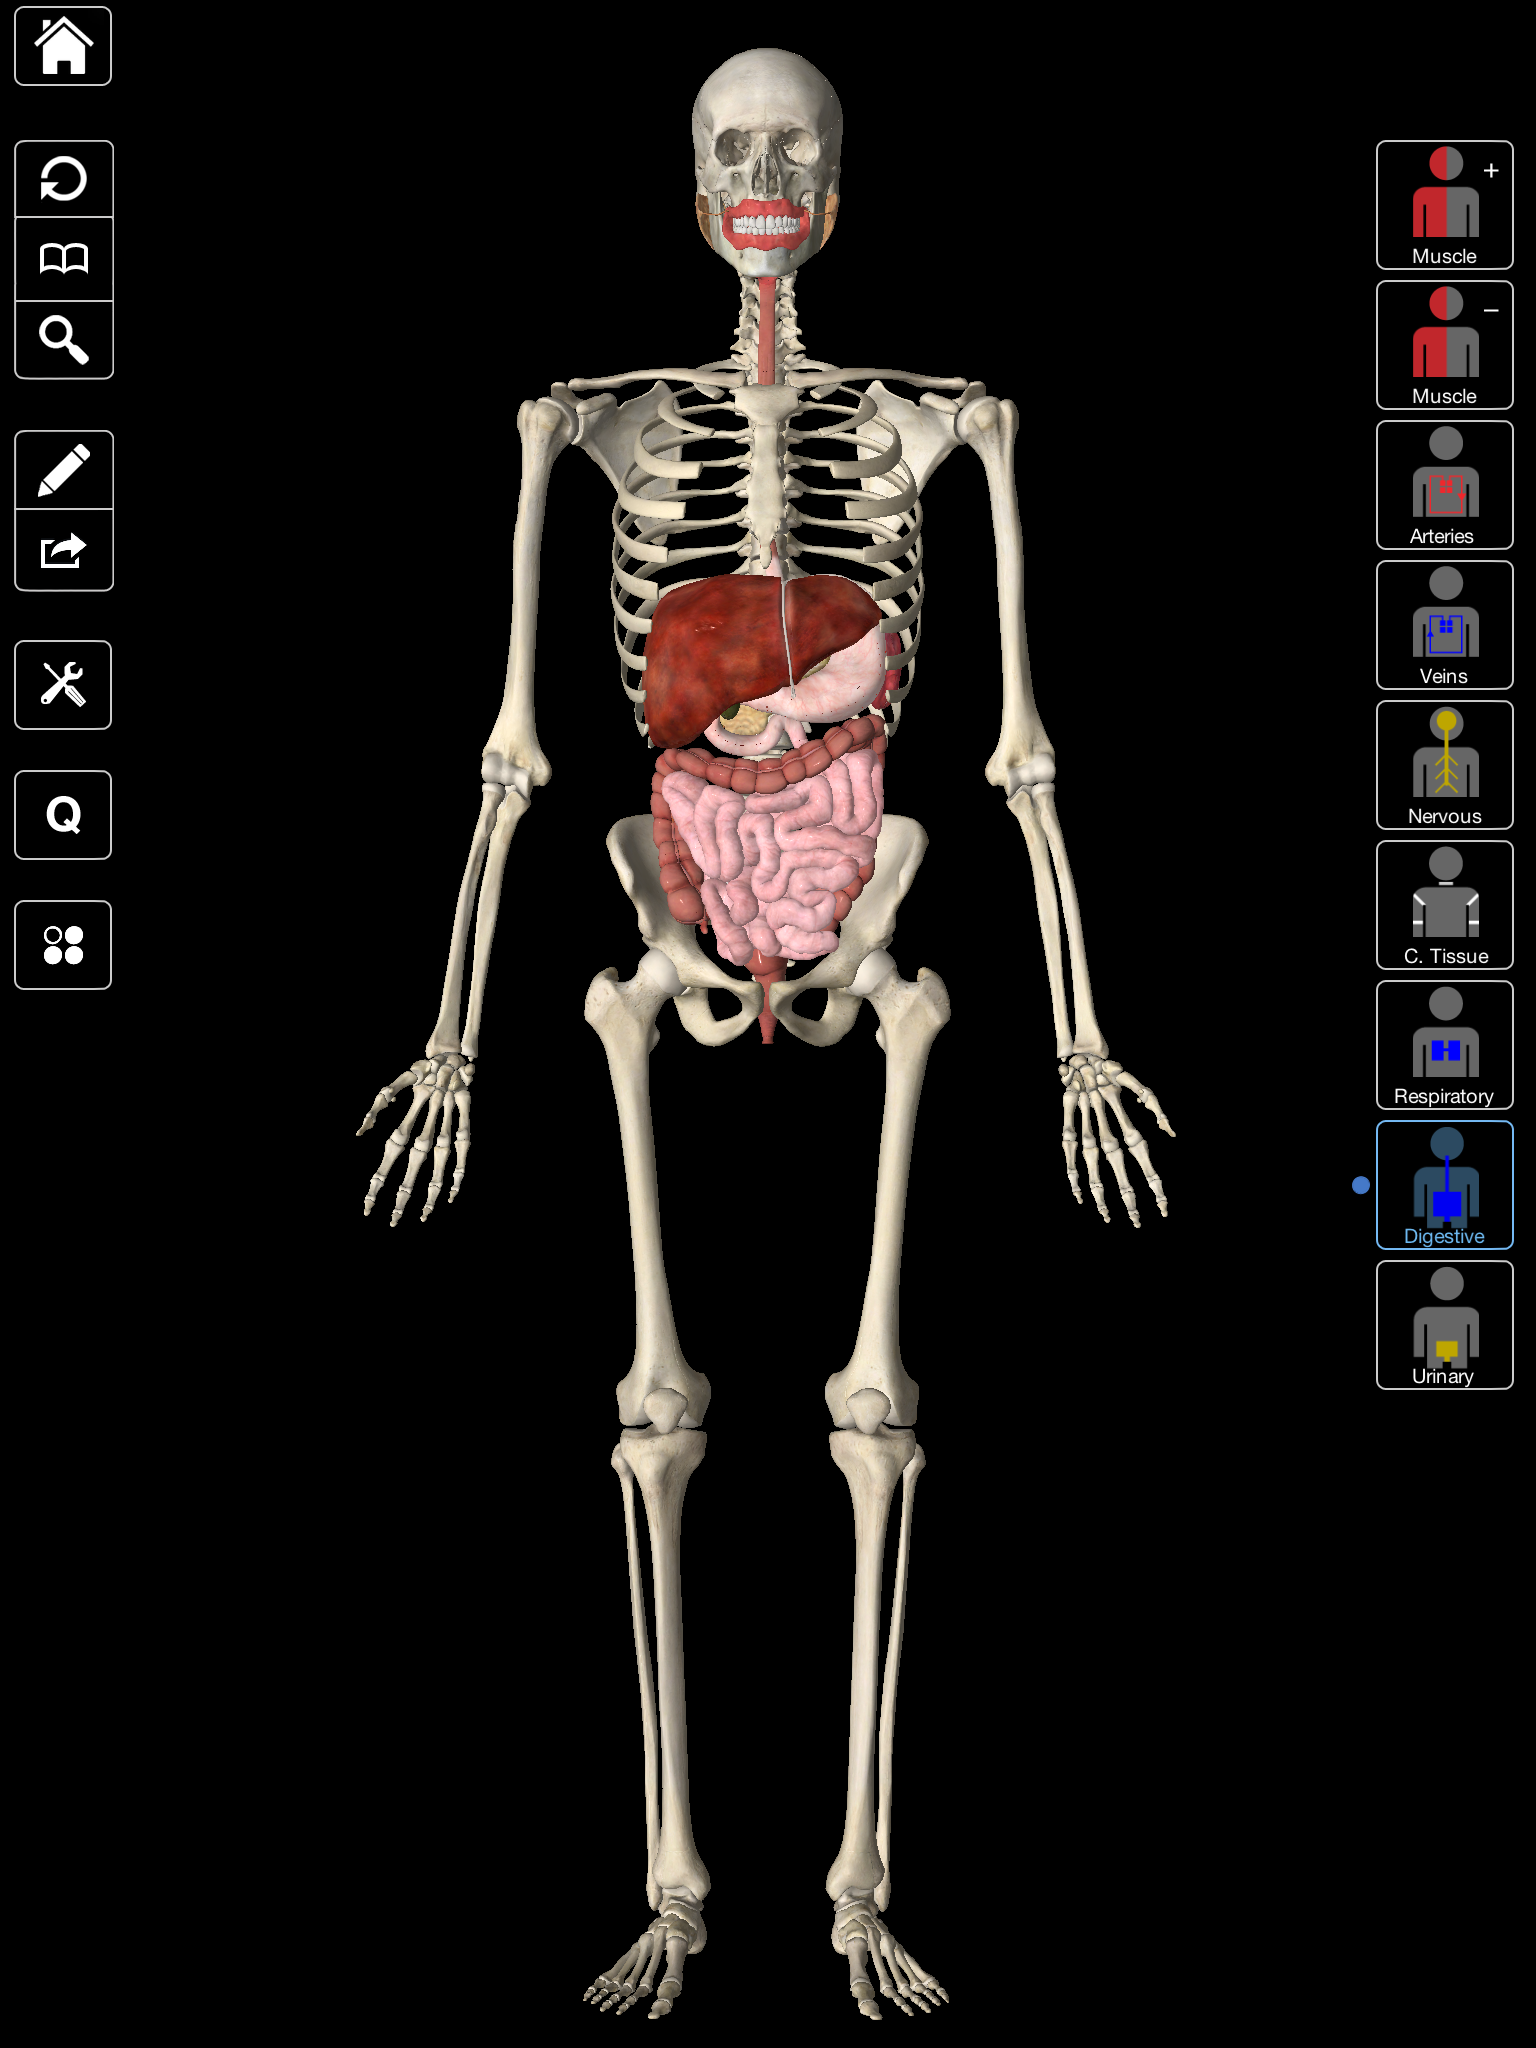 Pin de 3D4Medical en Medical Apps | Pinterest